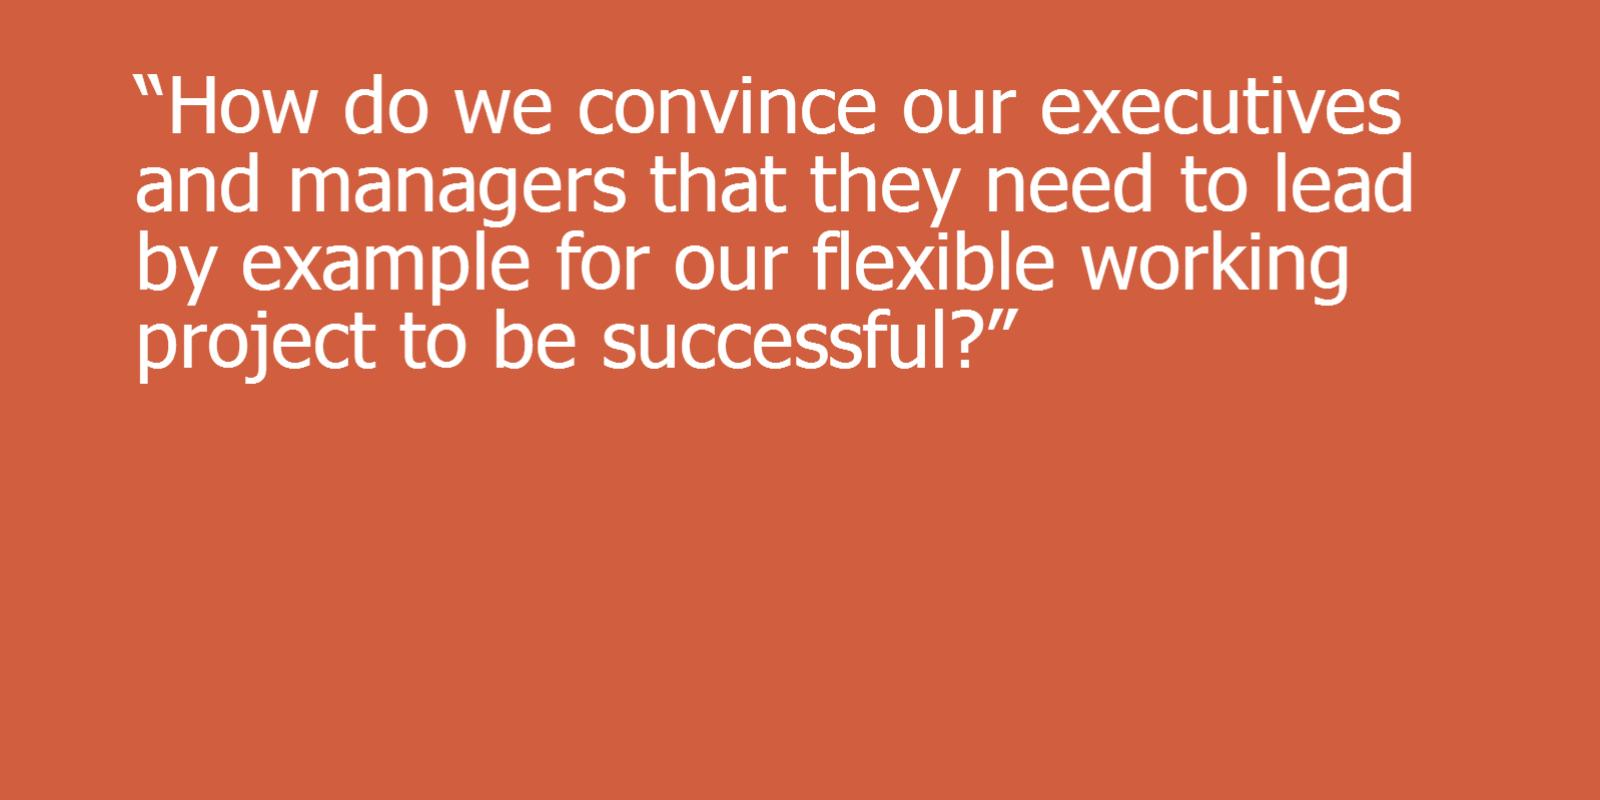 Image of How do we convince our executive and managers that they need to lead by example for our flexible working project to be successful?